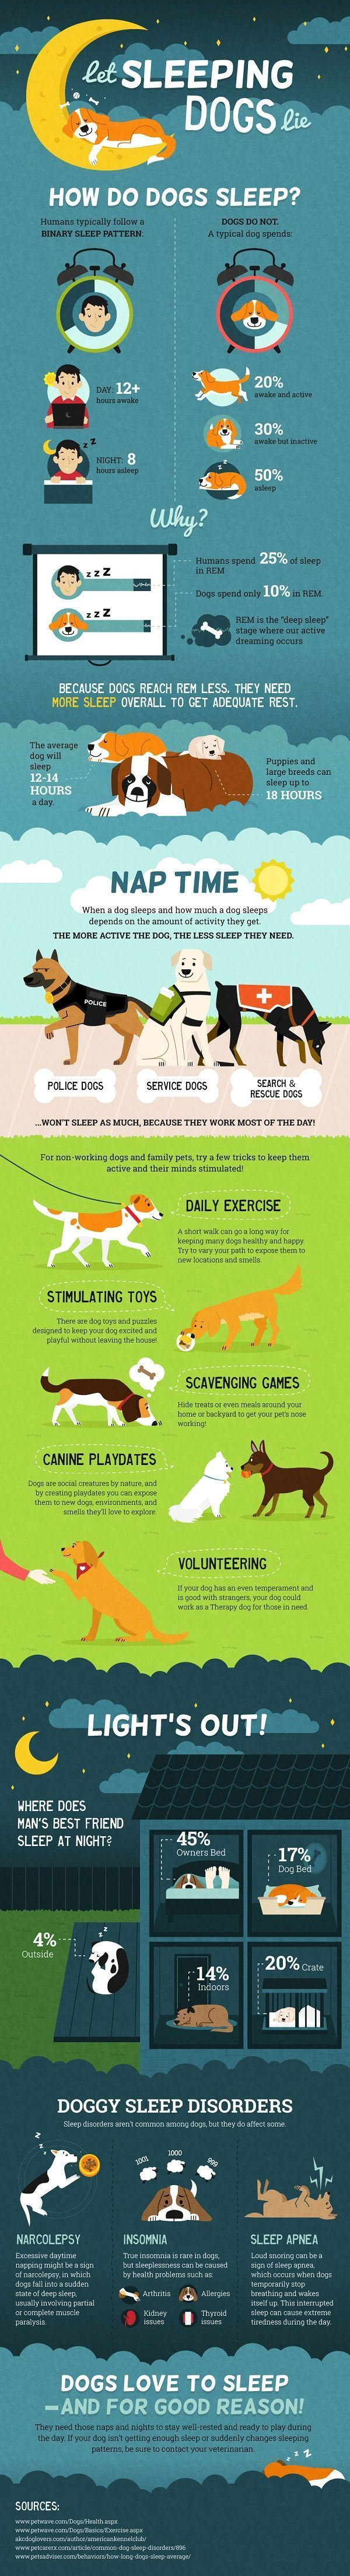 When a #dog sleeps and how much a #dog sleeps depends on the amount of activity they get. The more active the dog, the less sleep they need.